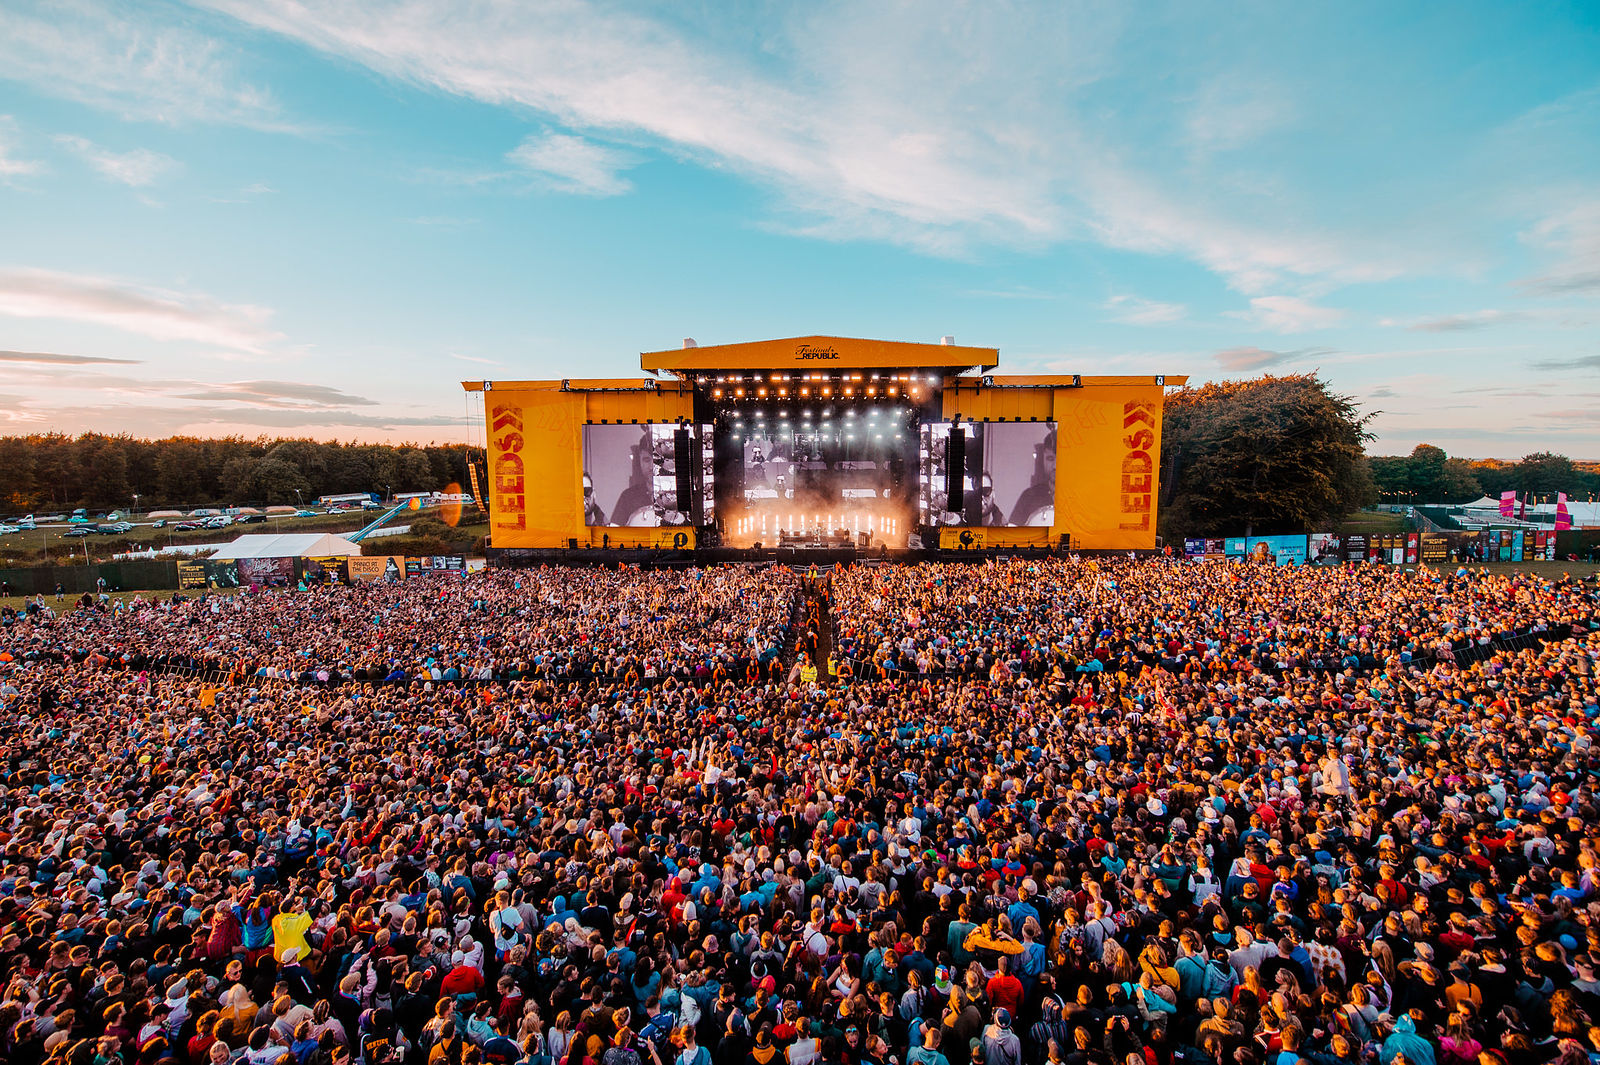 COURTEENERS STORMING FIRST DAY OF LEEDS FESTIVAL 2018 AT THE MAIN STAGE - 24.08.2018  PICTURE BY: MATT EACHUS